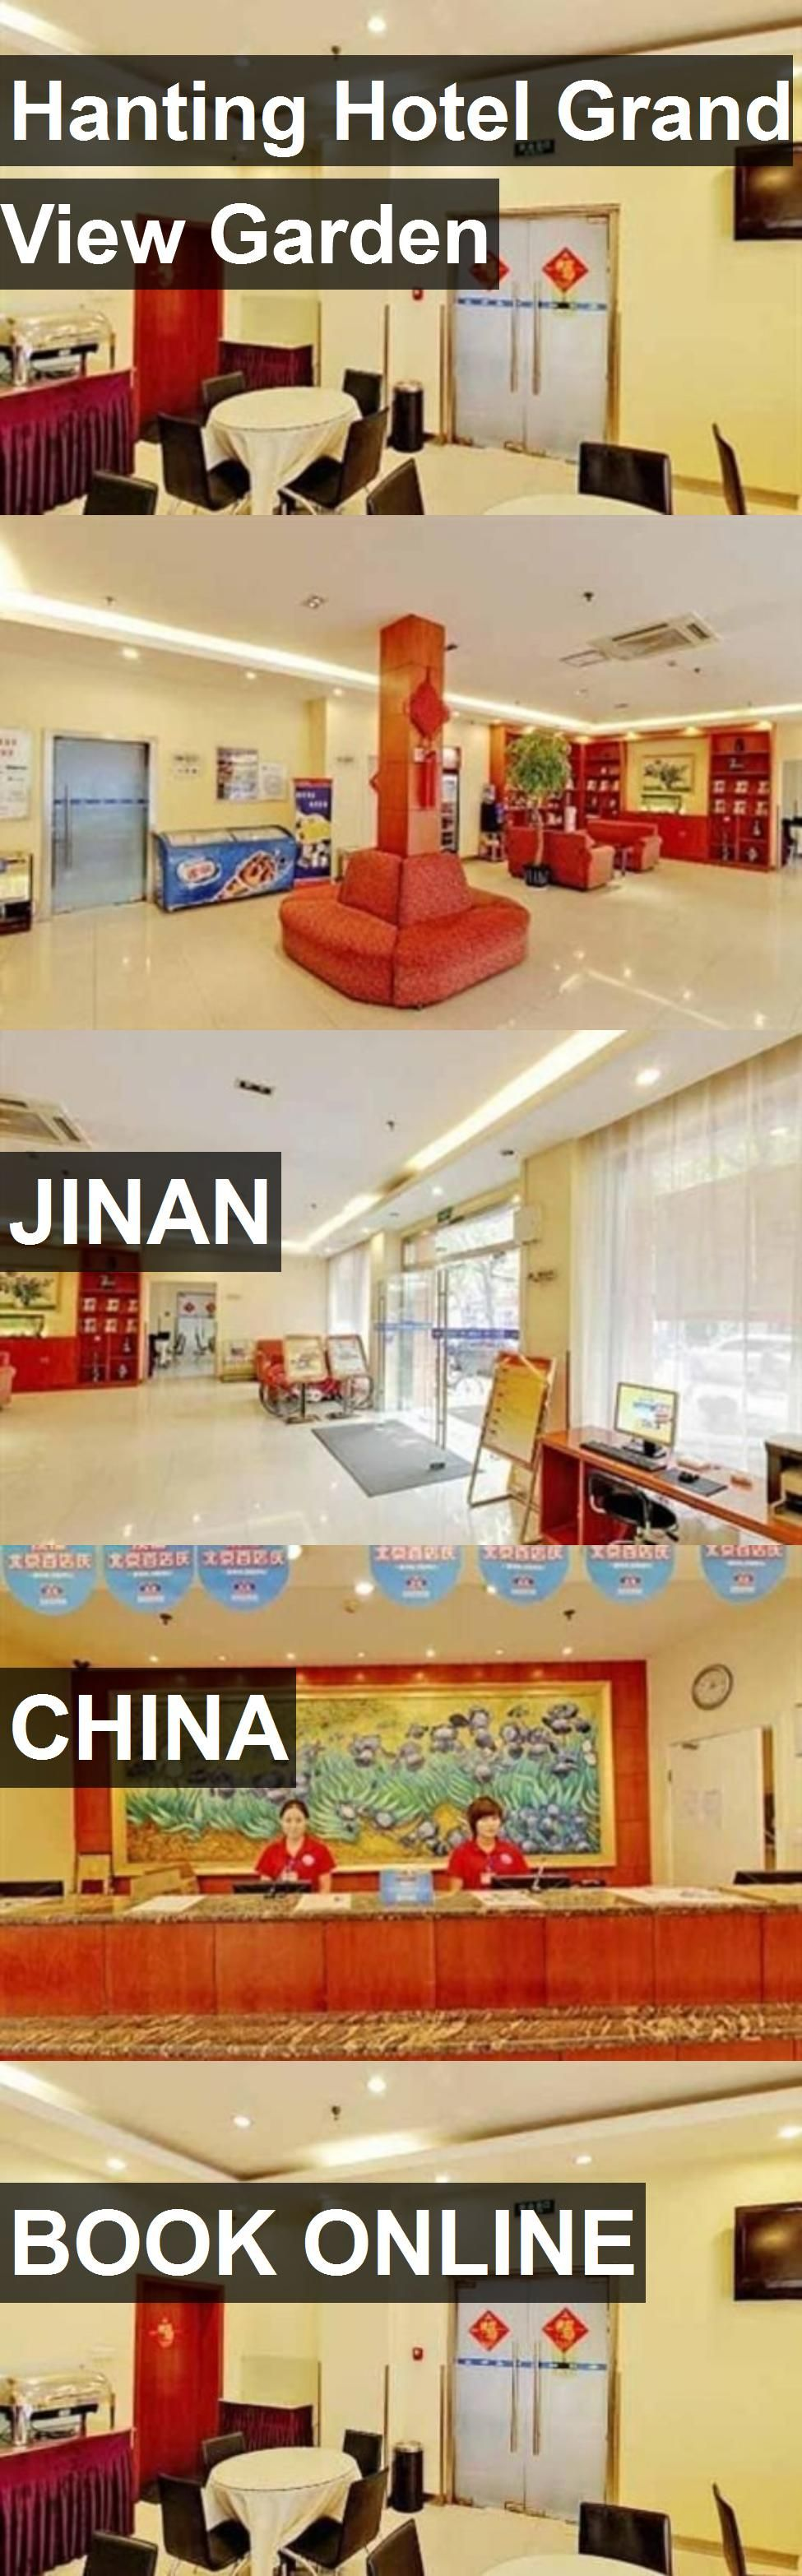 Hanting Hotel Grand View Garden in Jinan, China. For more information, photos, reviews and best prices please follow the link. #China #Jinan #travel #vacation #hotel